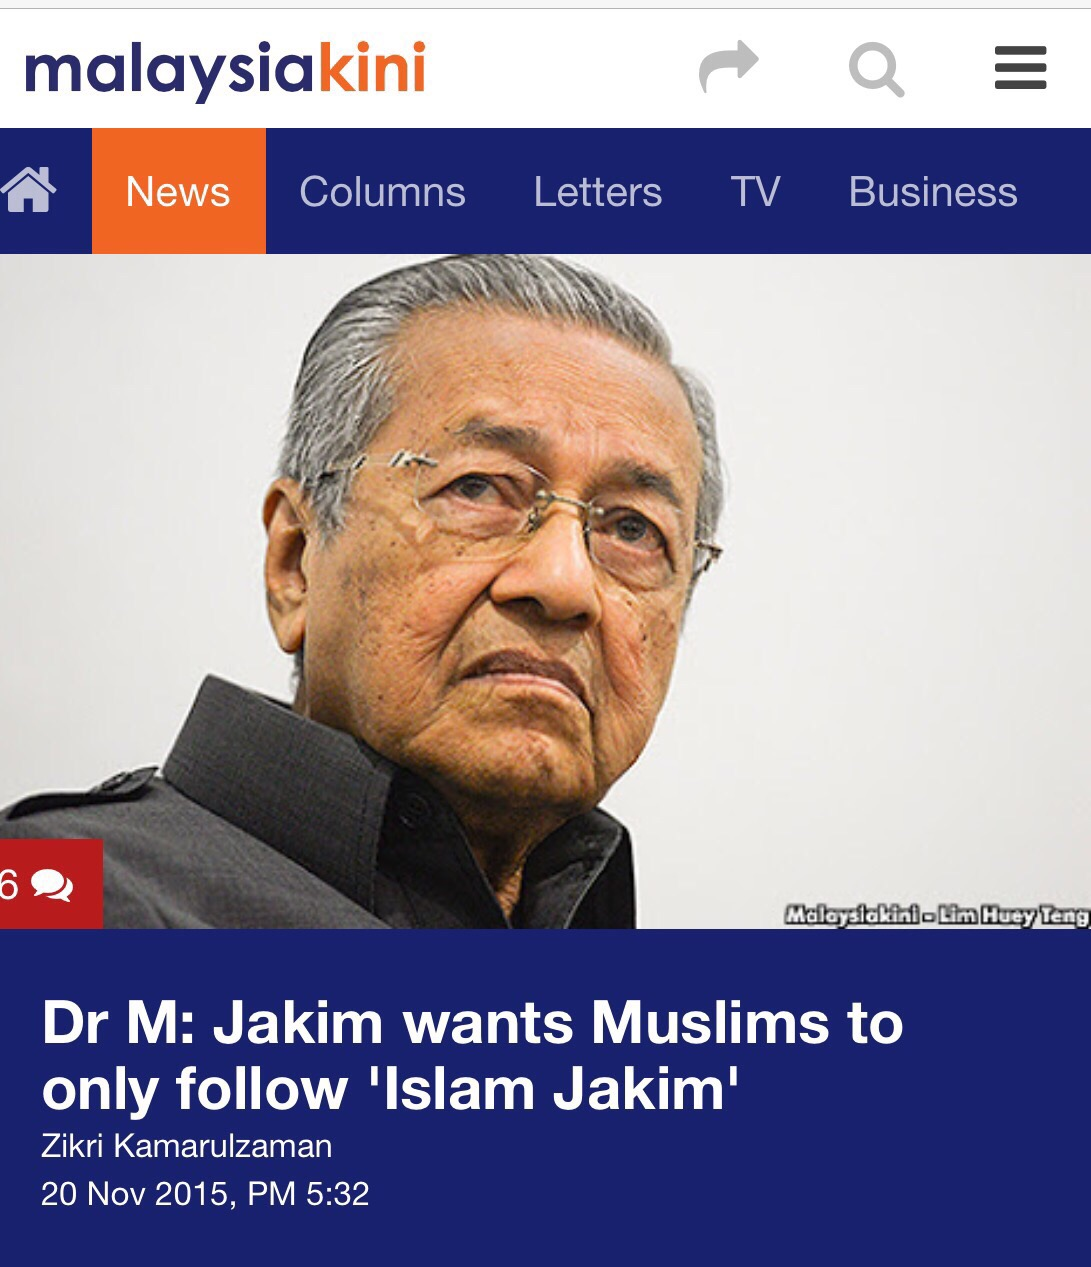 Perhaps, this person who is always mudah lupa especially during the PKFZ  hearings, has also lupa that he wants Malaysians to accept another version  of Islam ...